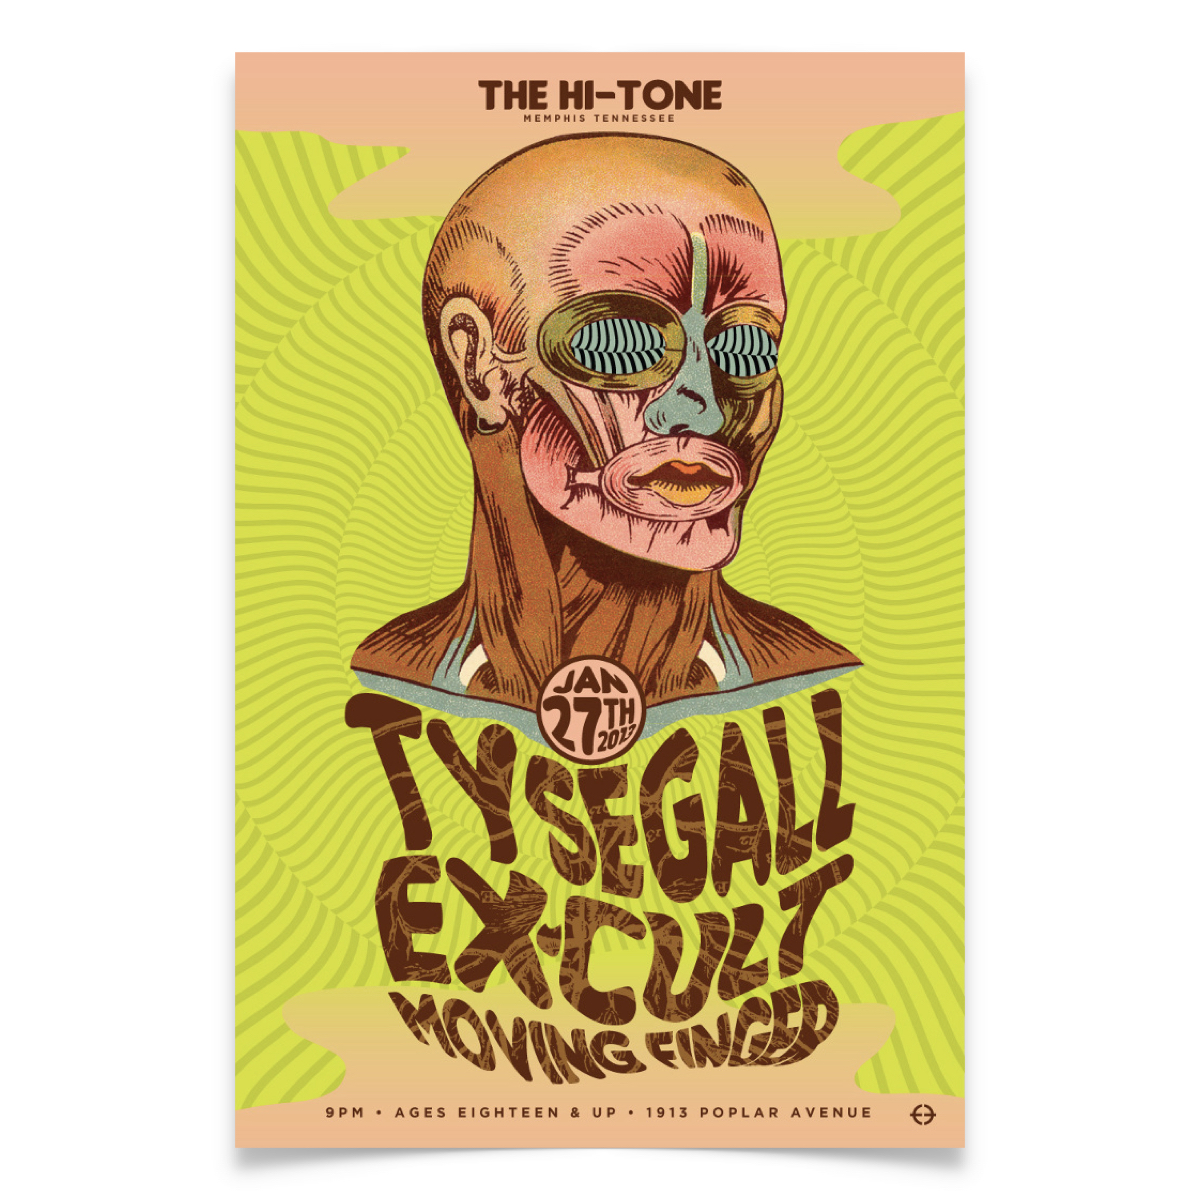 SFER-Posters-TySegall.jpeg